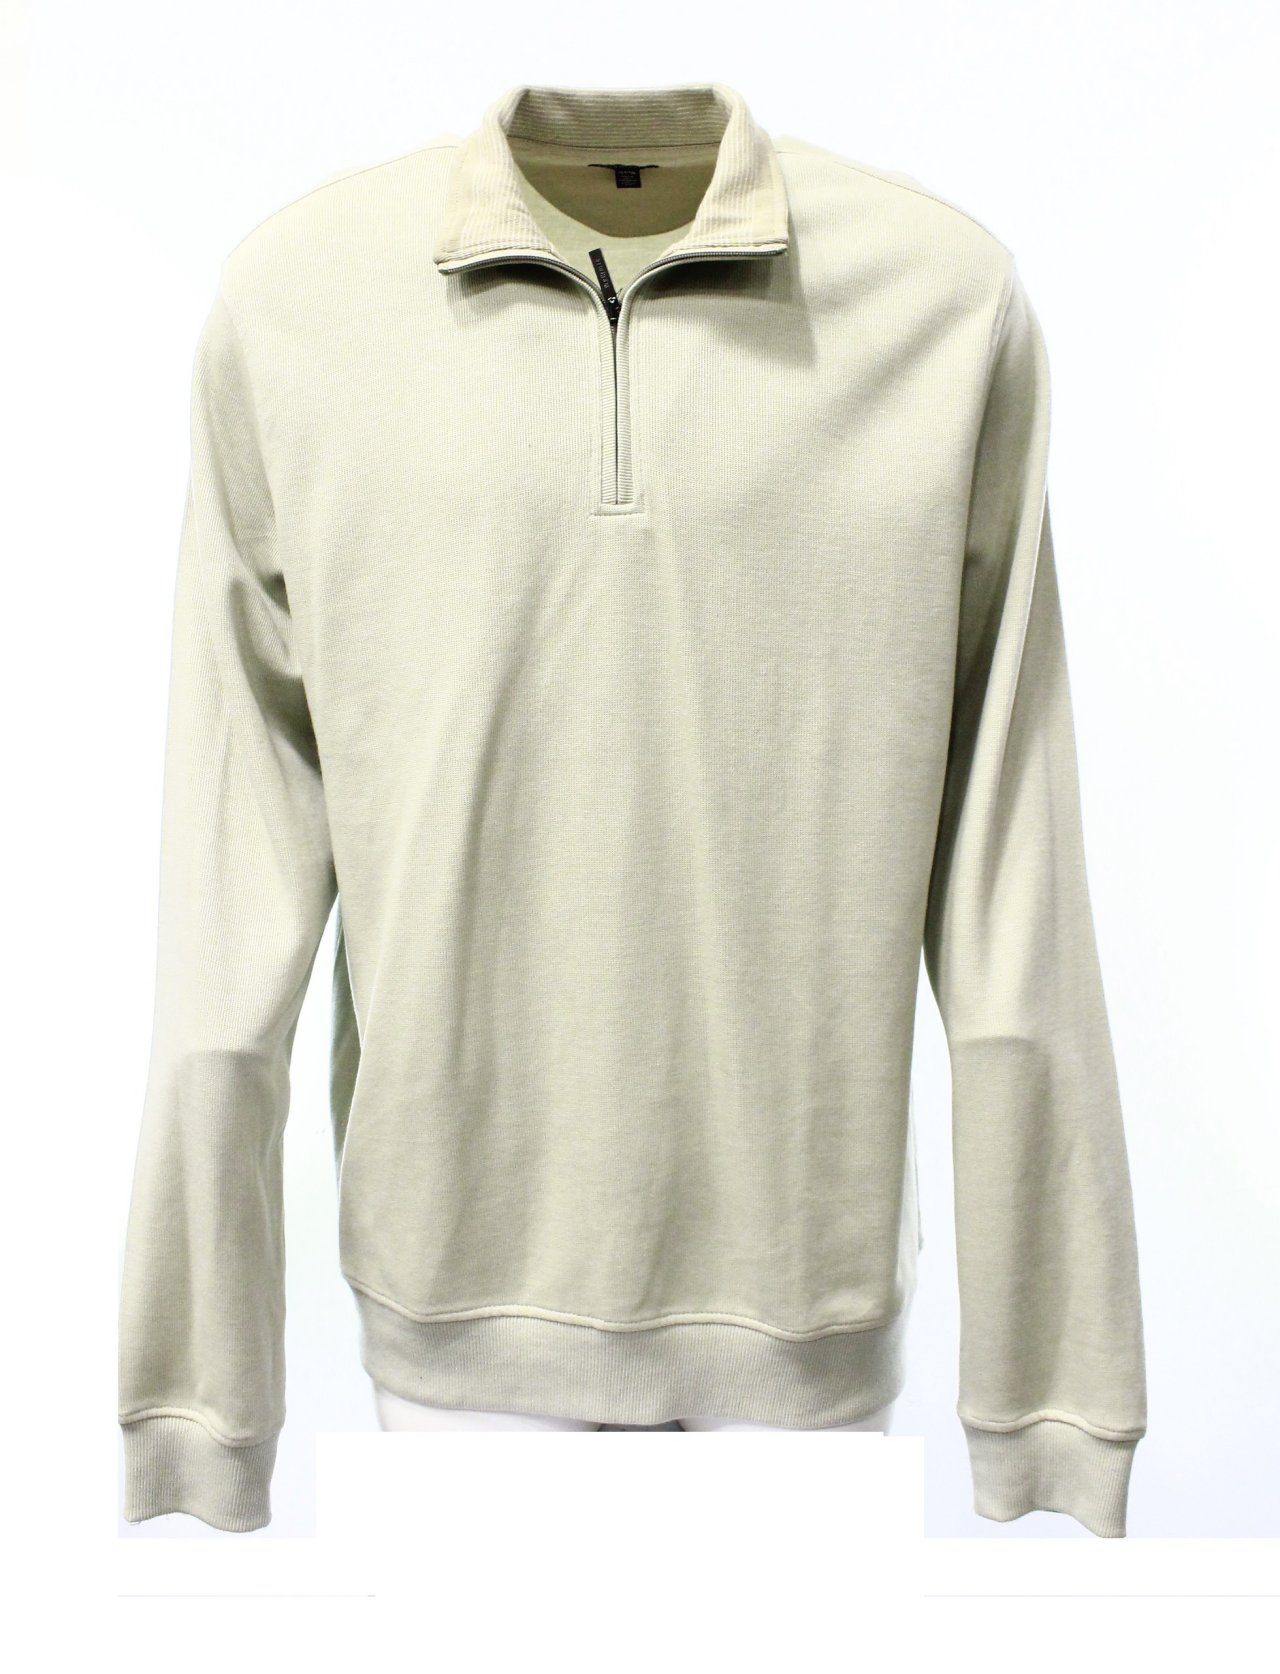 Van Heusen New Beige Knit Pullover Solid Sweater Mens Xlt